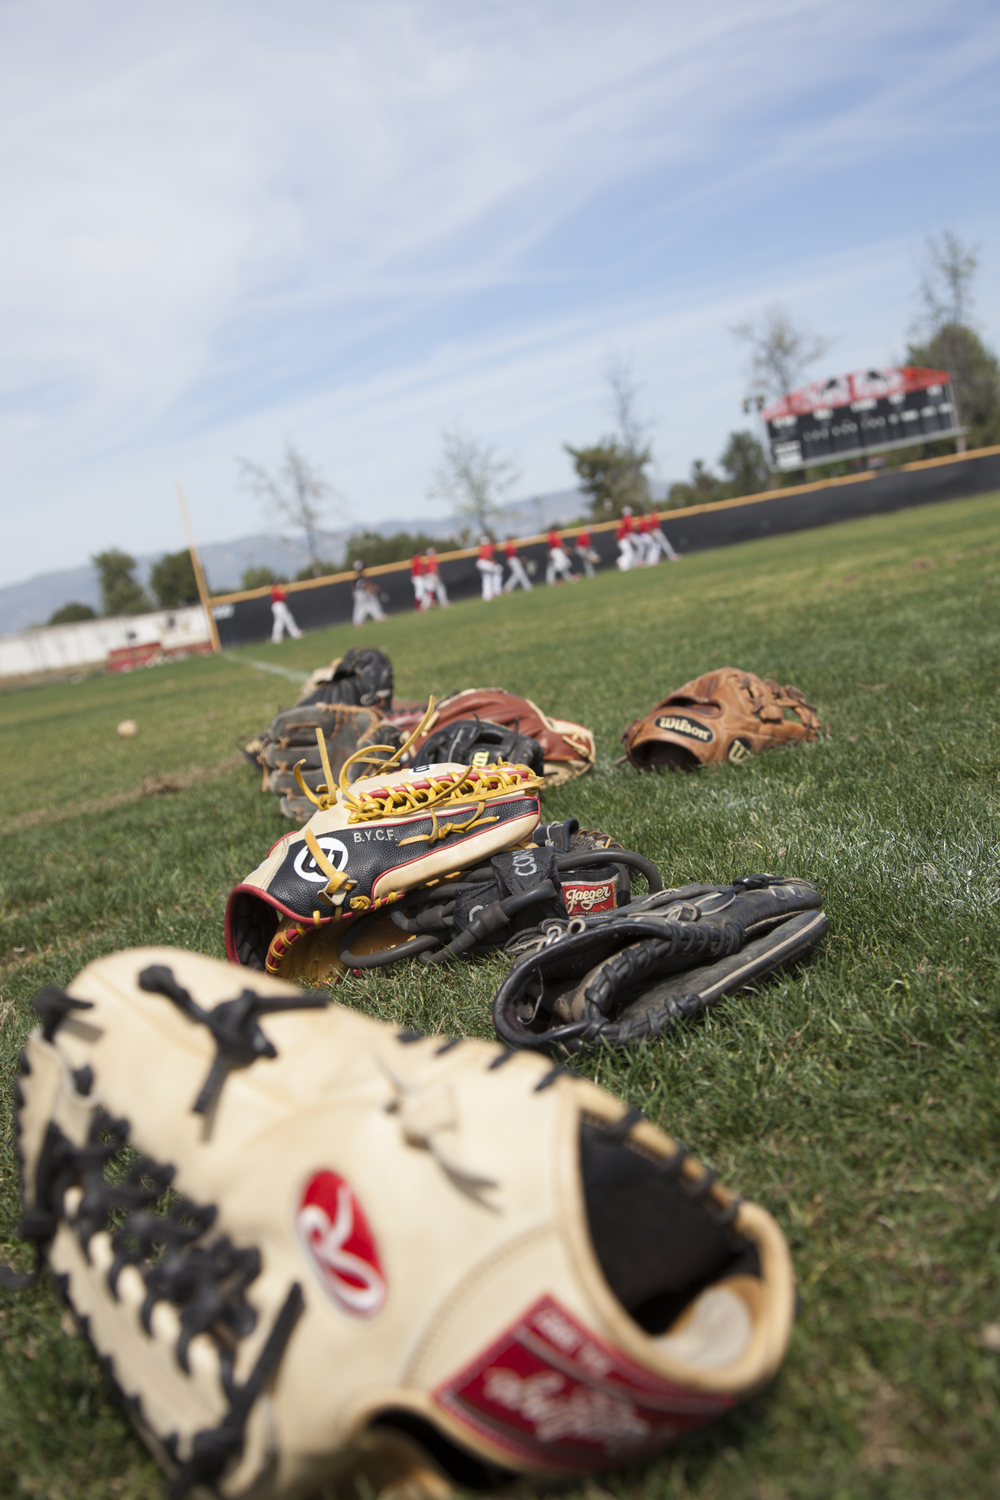 Gloves lay on the grass as the team practices in the background at Joe Kelly Field on Tuesday, March 10, 2015. Woodland Hills, Calif.   Read the full story  here